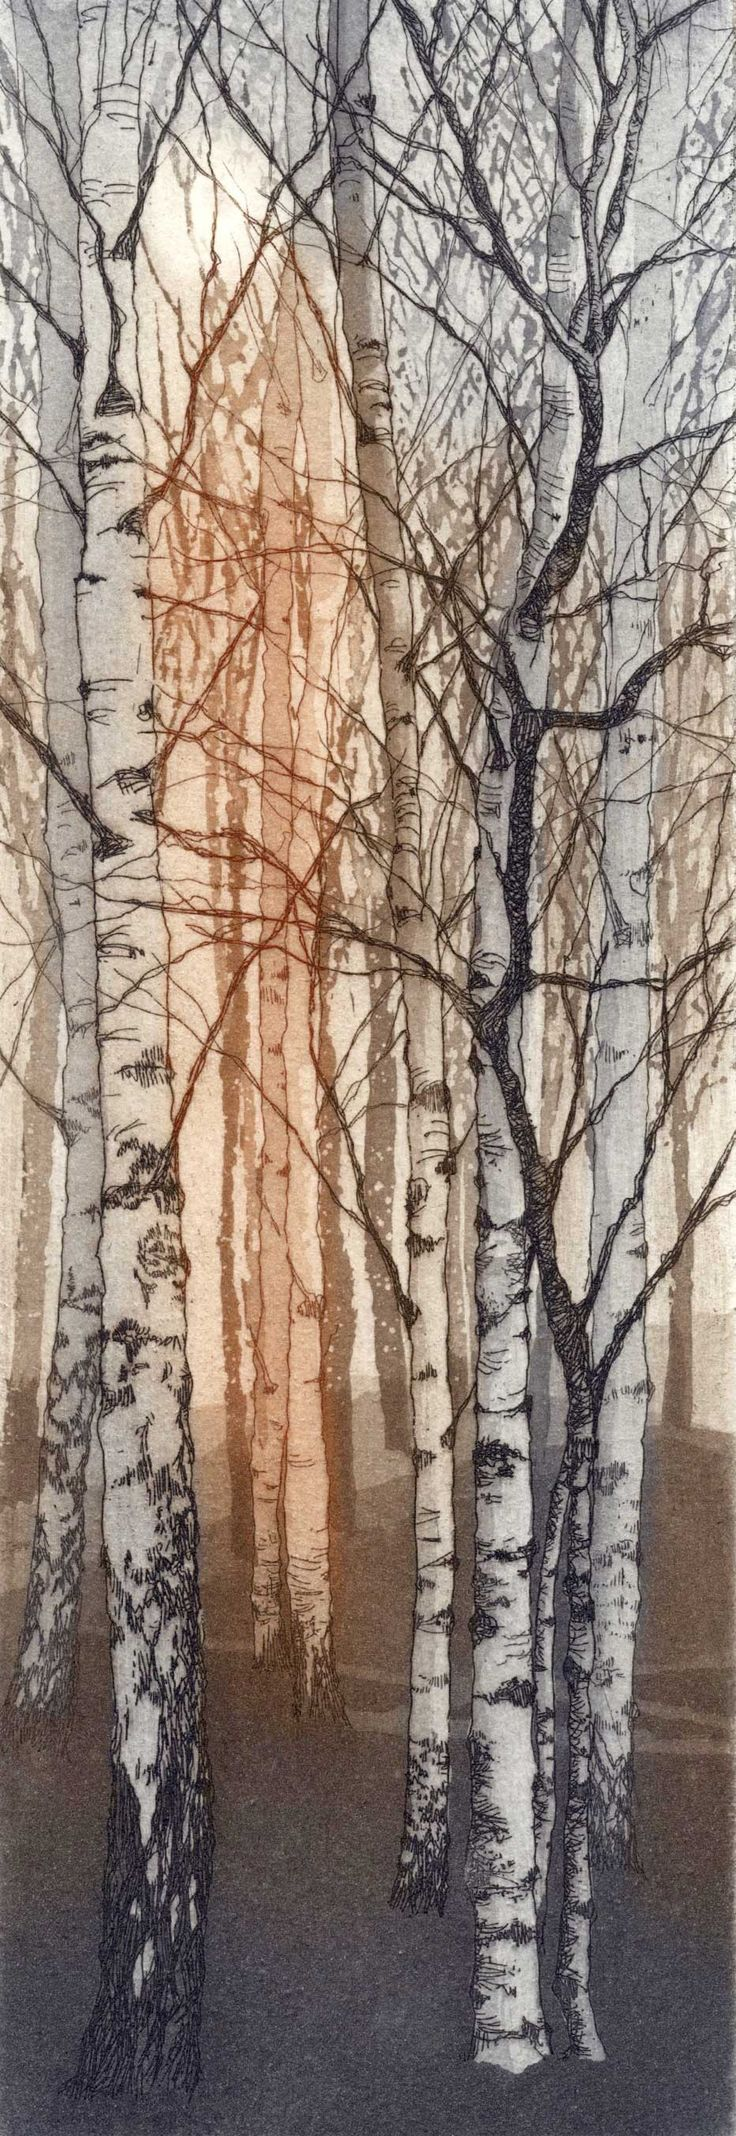 """Young Birches"" etching by Chrissy Norman (inspired by the silver birches that stand outside Tate Modern.)"